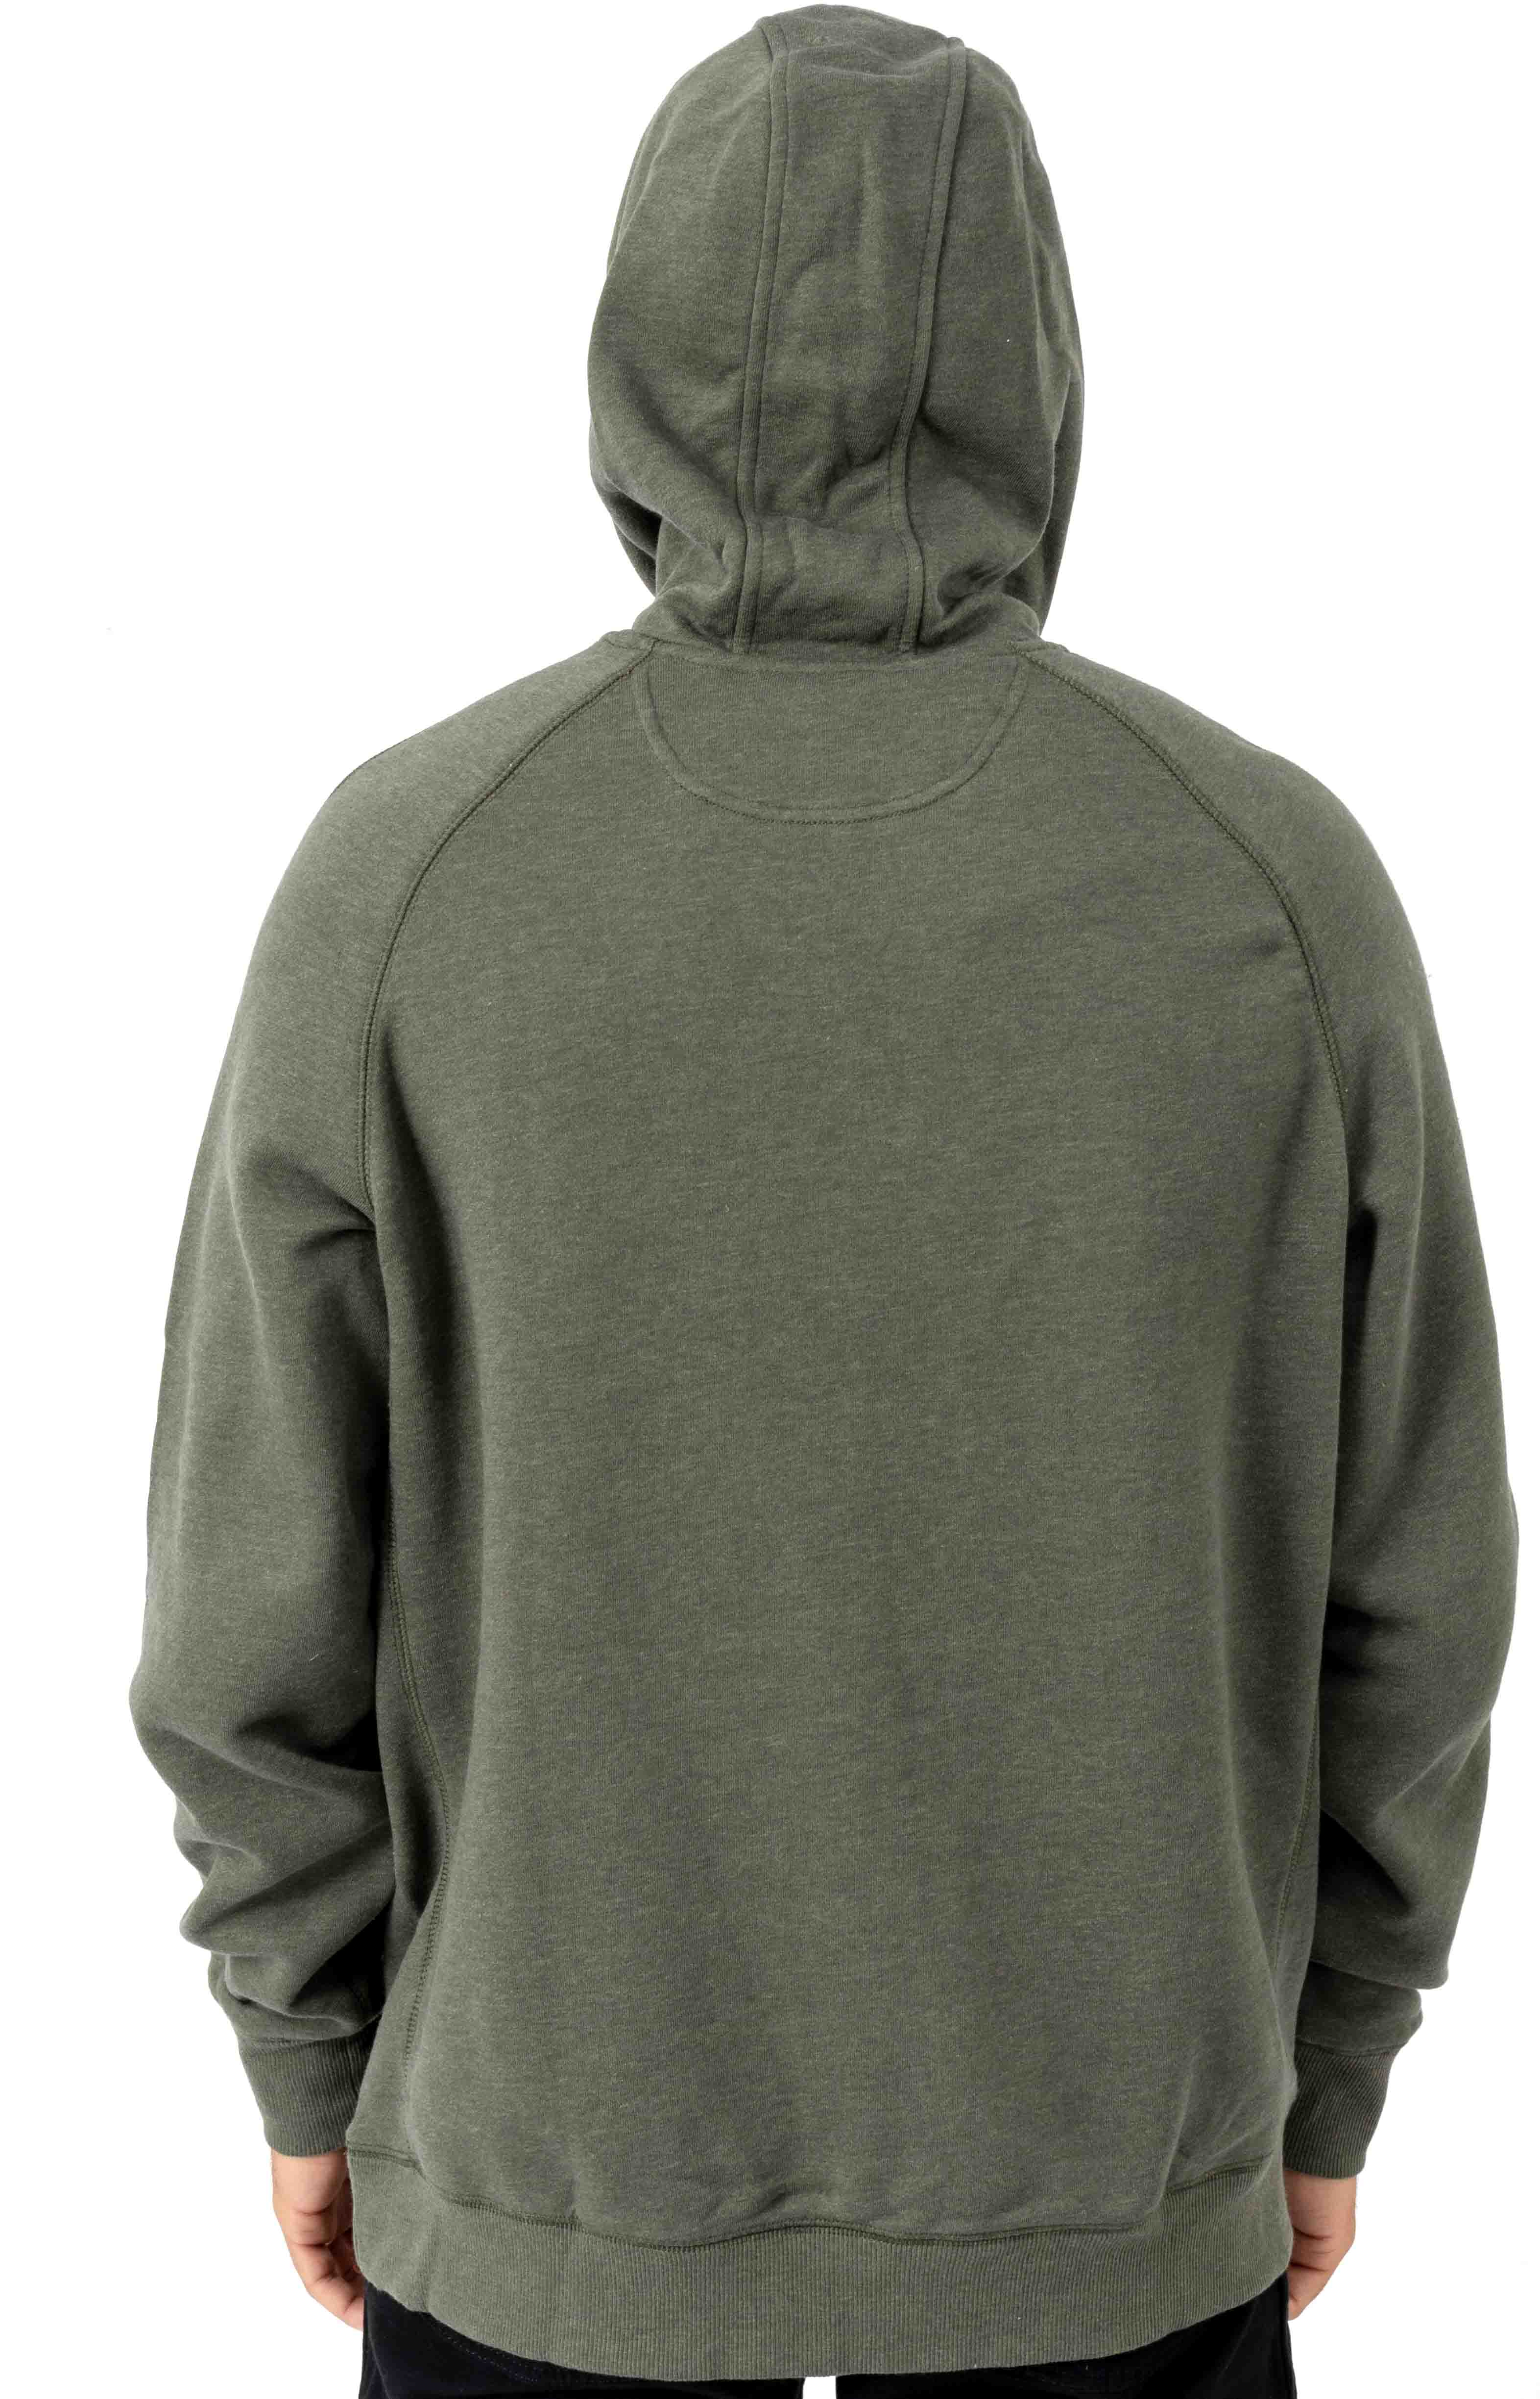 (103873) Force Delmont Signature Graphic Pullover Hoodie - Moss Heather  3